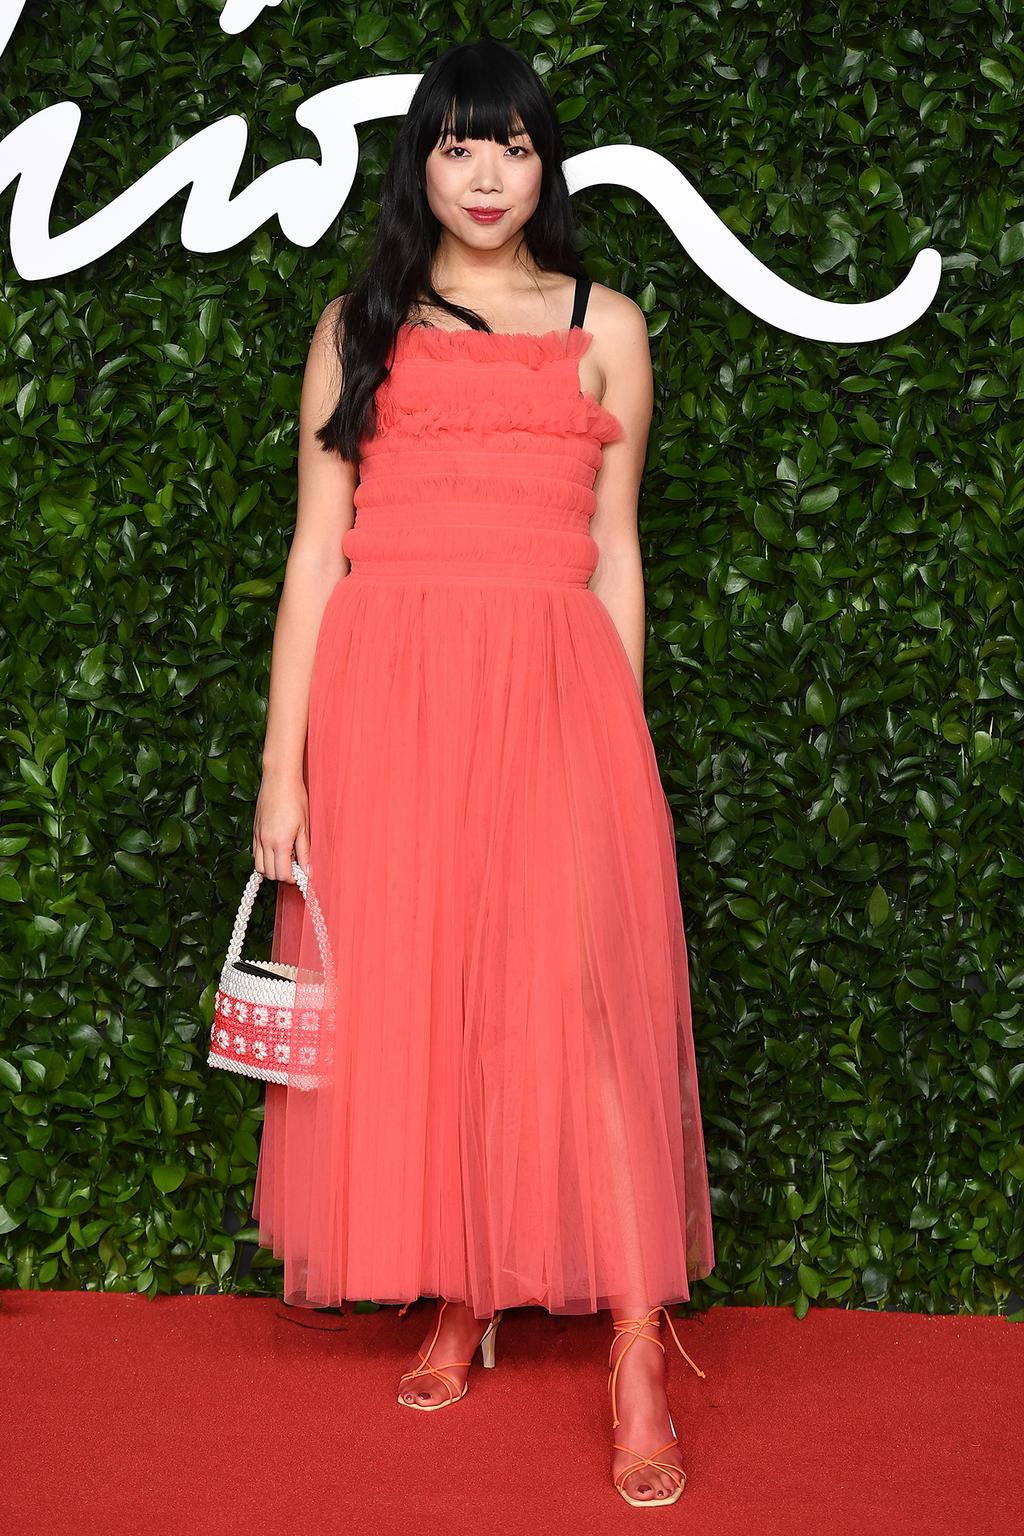 susie-lau-attends-the-british-fashion-awards